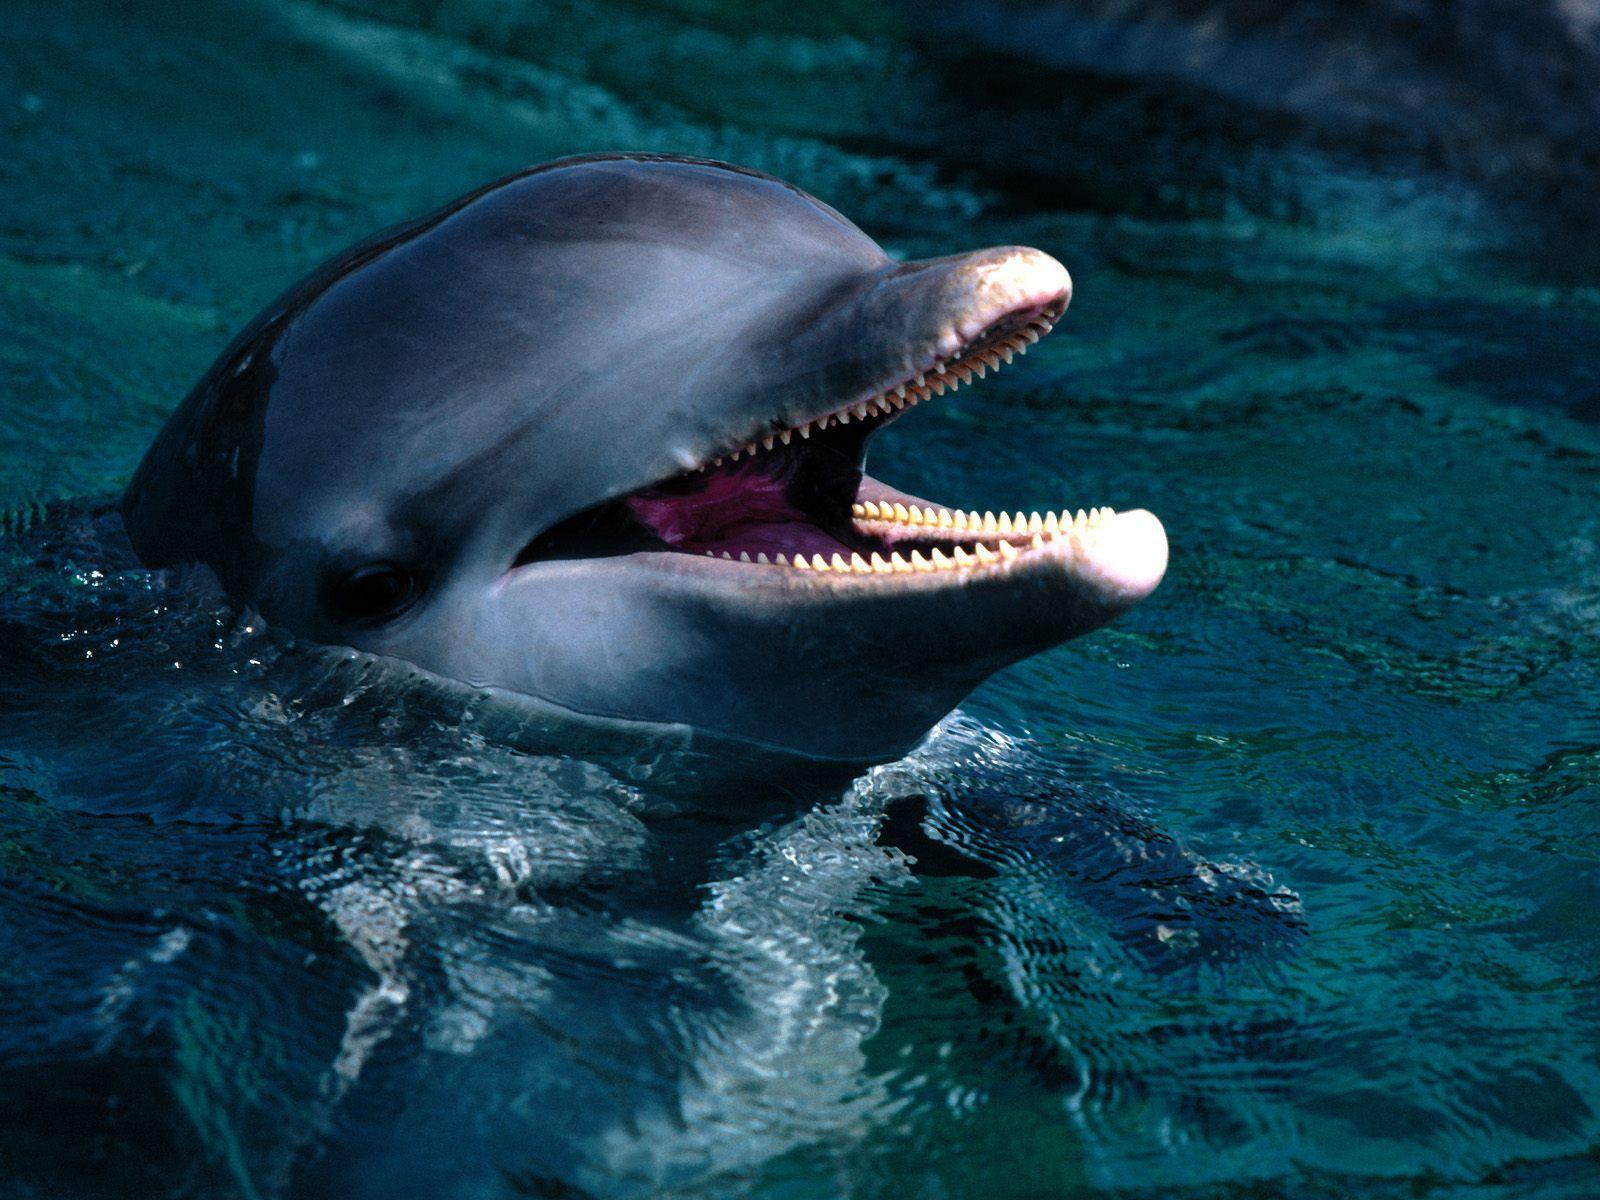 Free Dolphin Wallpaper, Screensavers, Pictures, Videos and Site ...